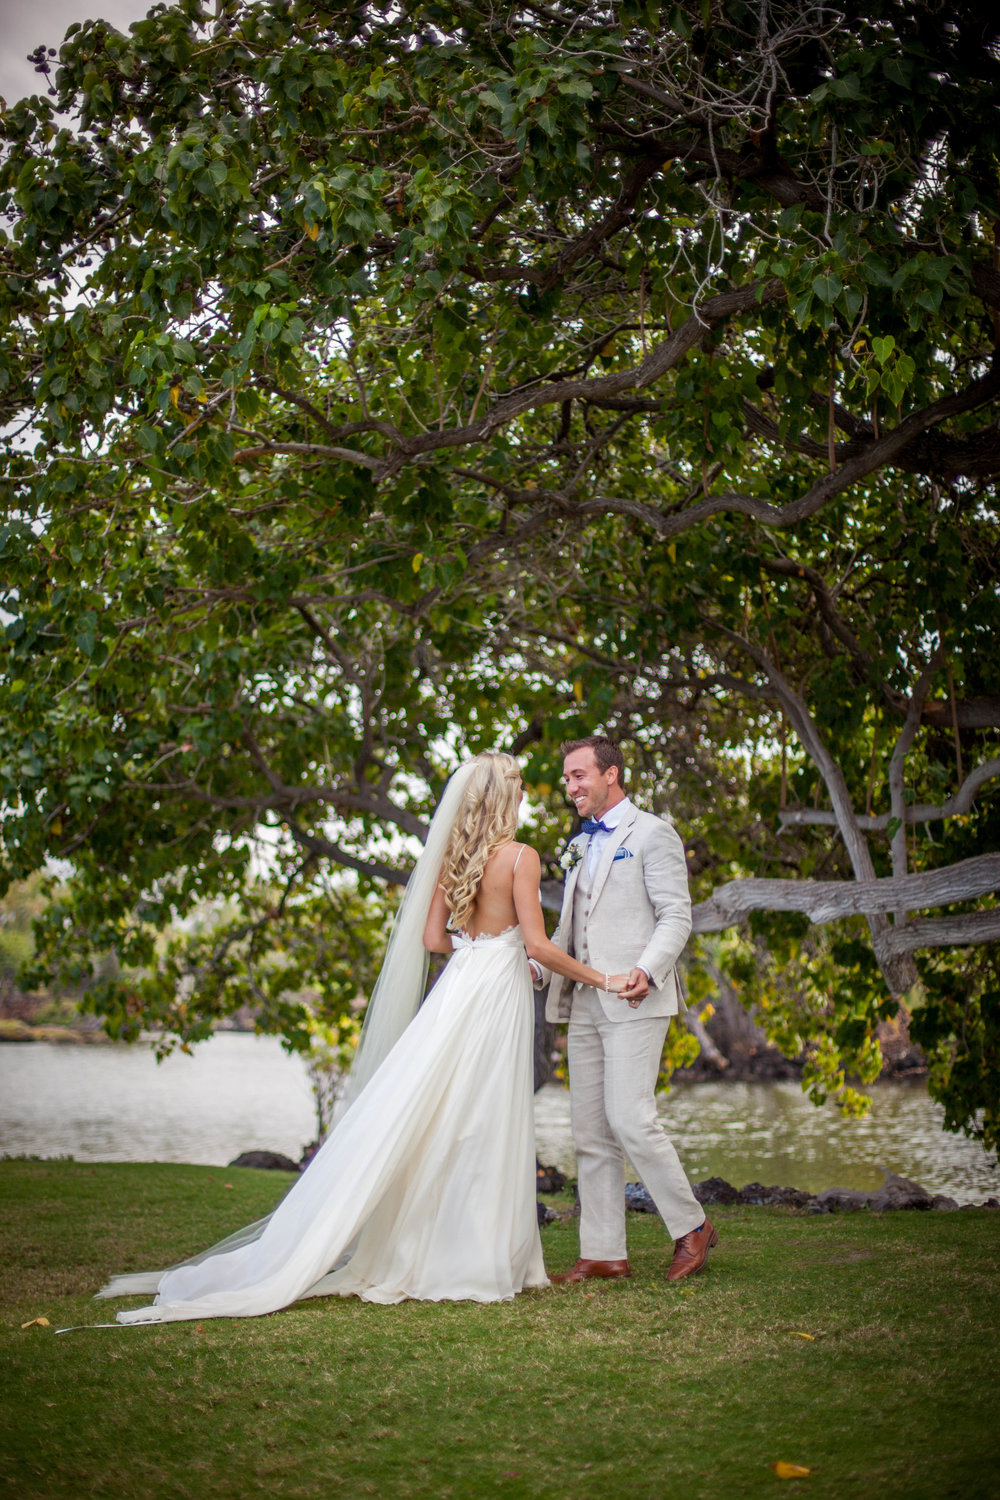 big island hawaii mauna lani resort wedding © kelilina photography 20160131143452-1.jpg